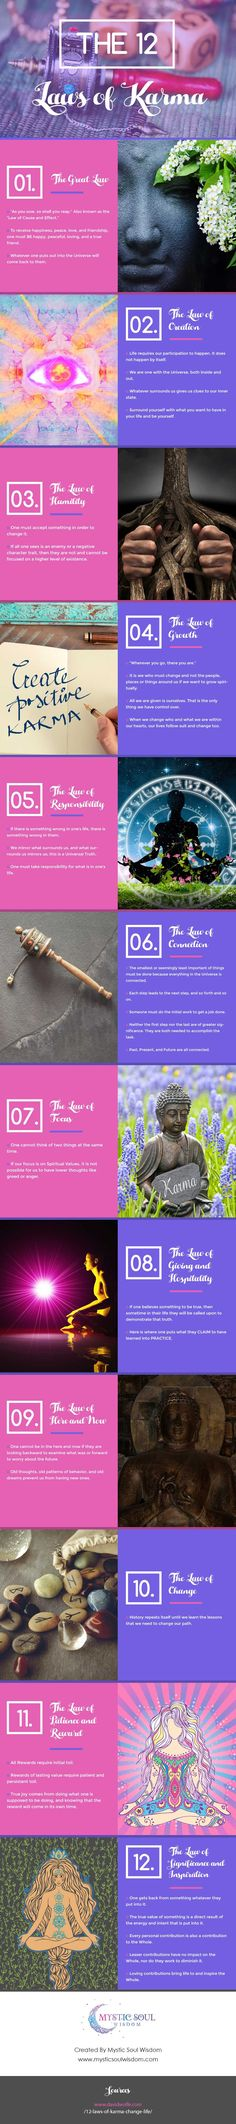 http://www.mysticsoulwisdom.com/karma-infographic/4592738674 In this infographic we look at the 12 laws of karma